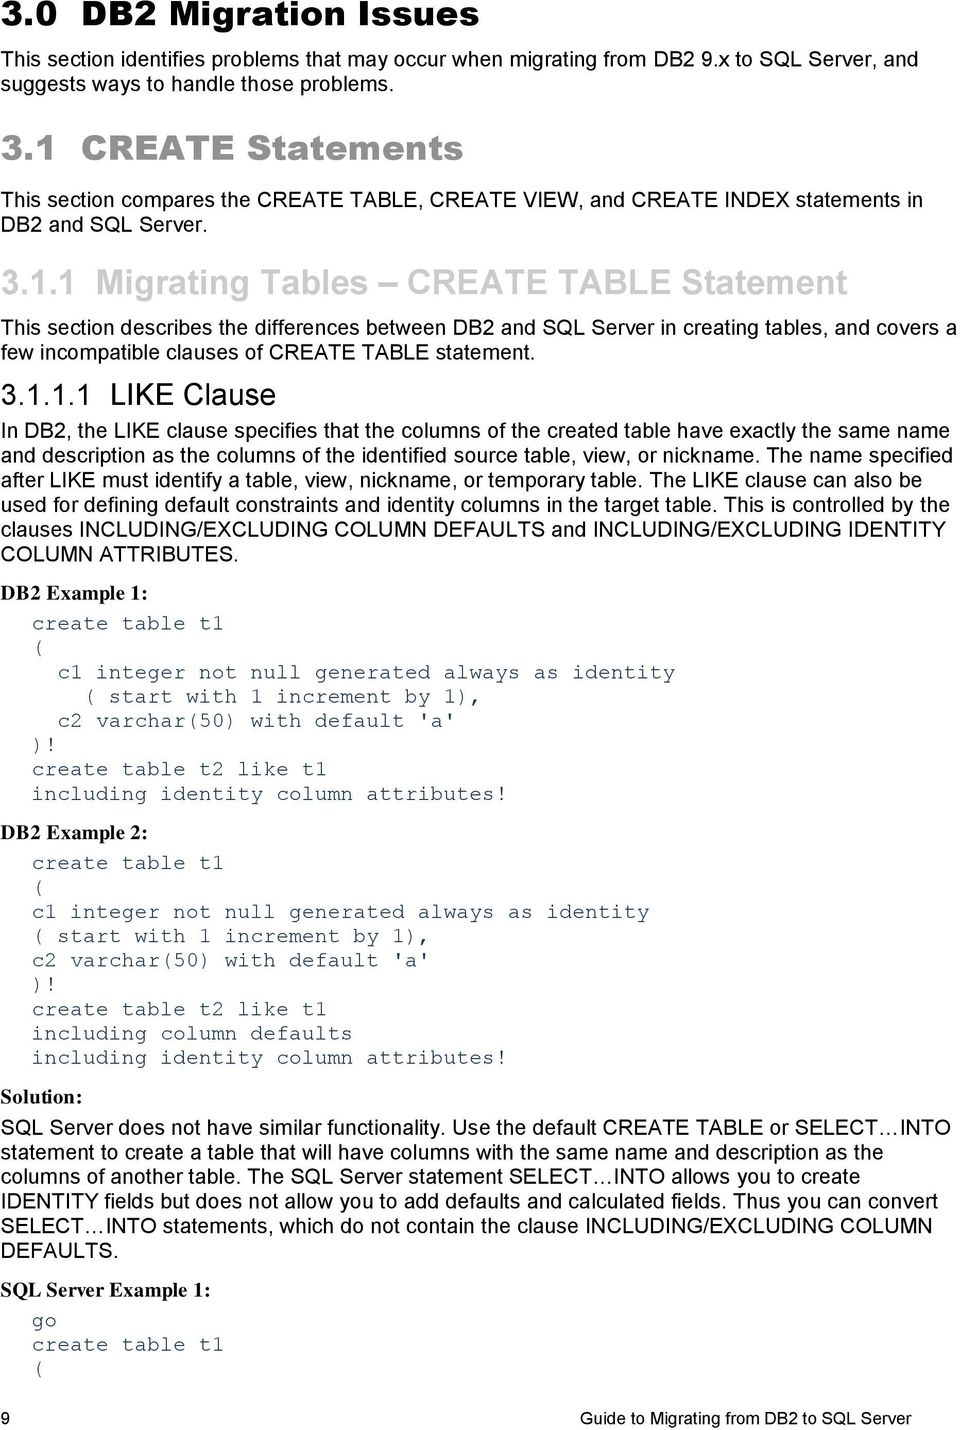 3.1.1.1 LIKE Clause In DB2, the LIKE clause specifies that the columns of the created table have exactly the same name and description as the columns of the identified source table, view, or nickname.